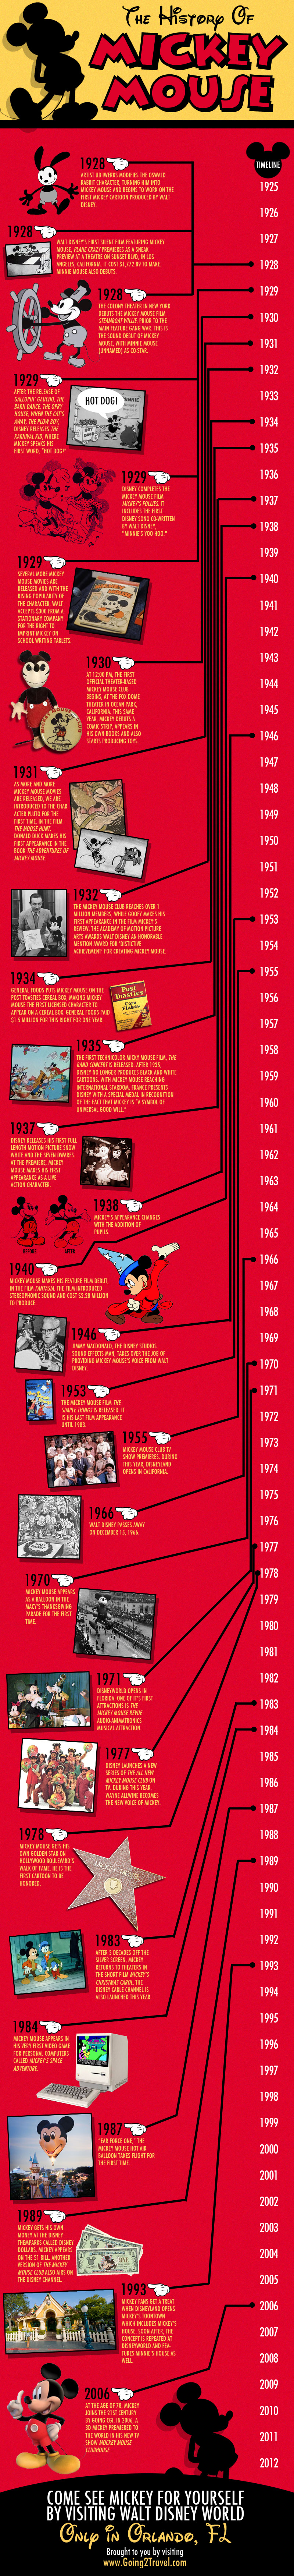 Mickey Mouse Timeline-Infographic